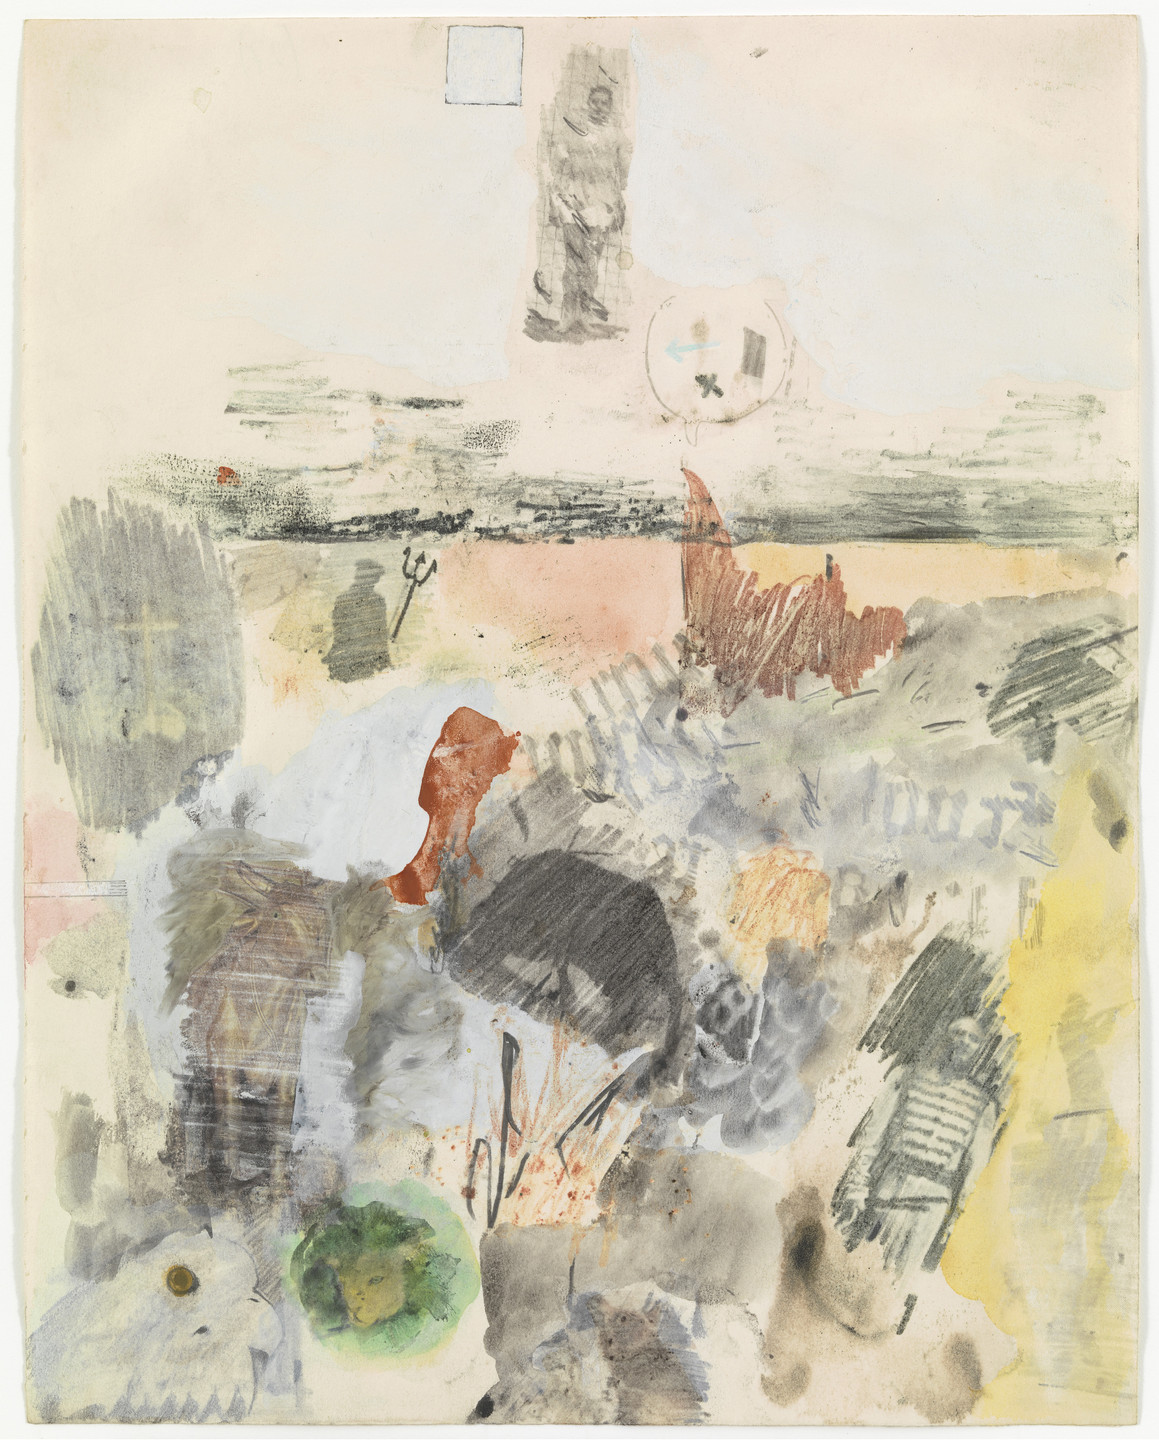 Robert Rauschenberg. Canto XXVII: Circle Eight, Bolgia 8, The Evil Counselors from the series Thirty-Four Illustrations for Dante's Inferno. (1959-60)